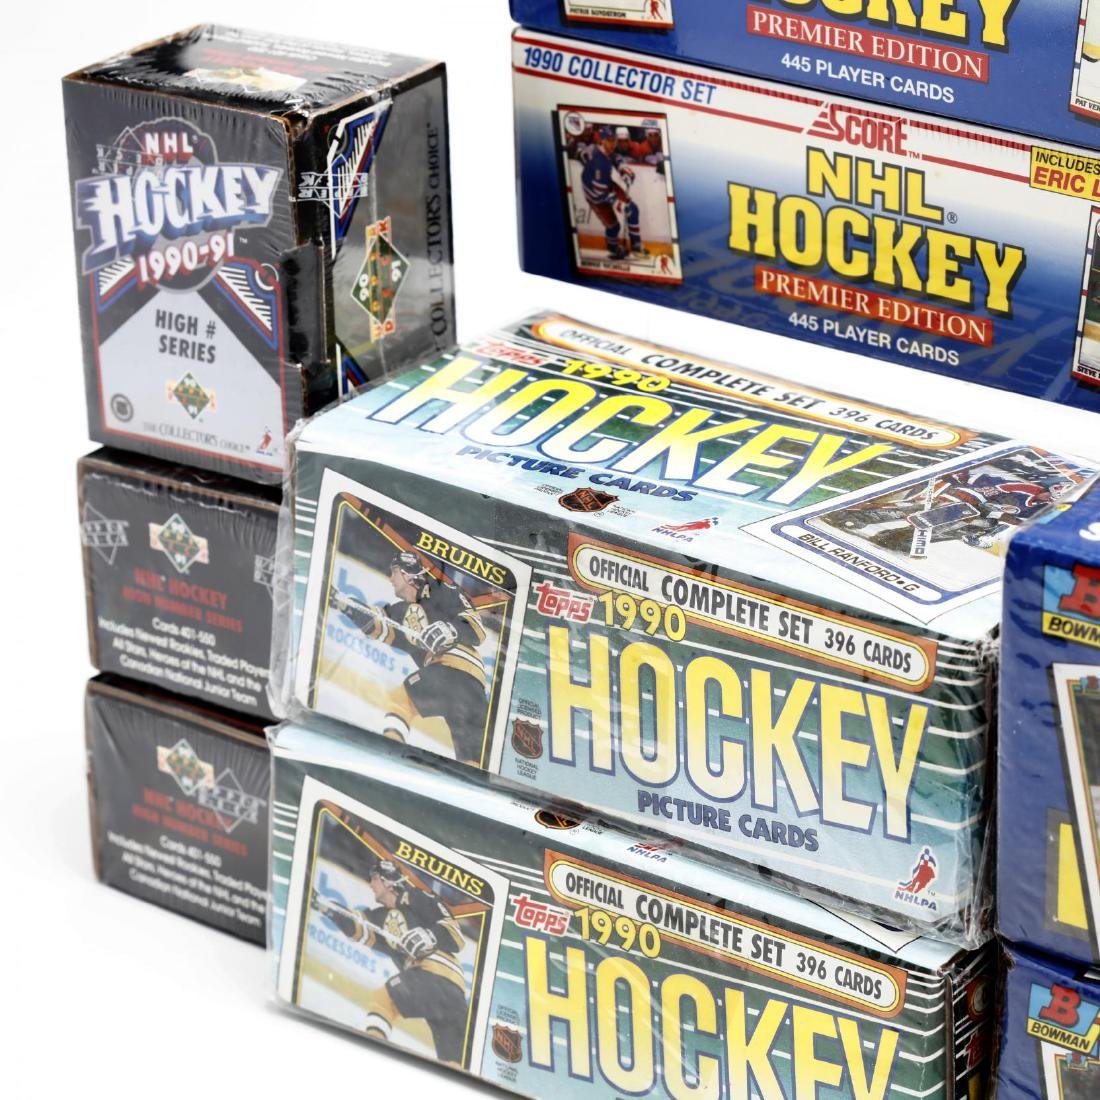 Fifteen Factory Sealed 1990/91 NHL Hockey Card Boxes - 4